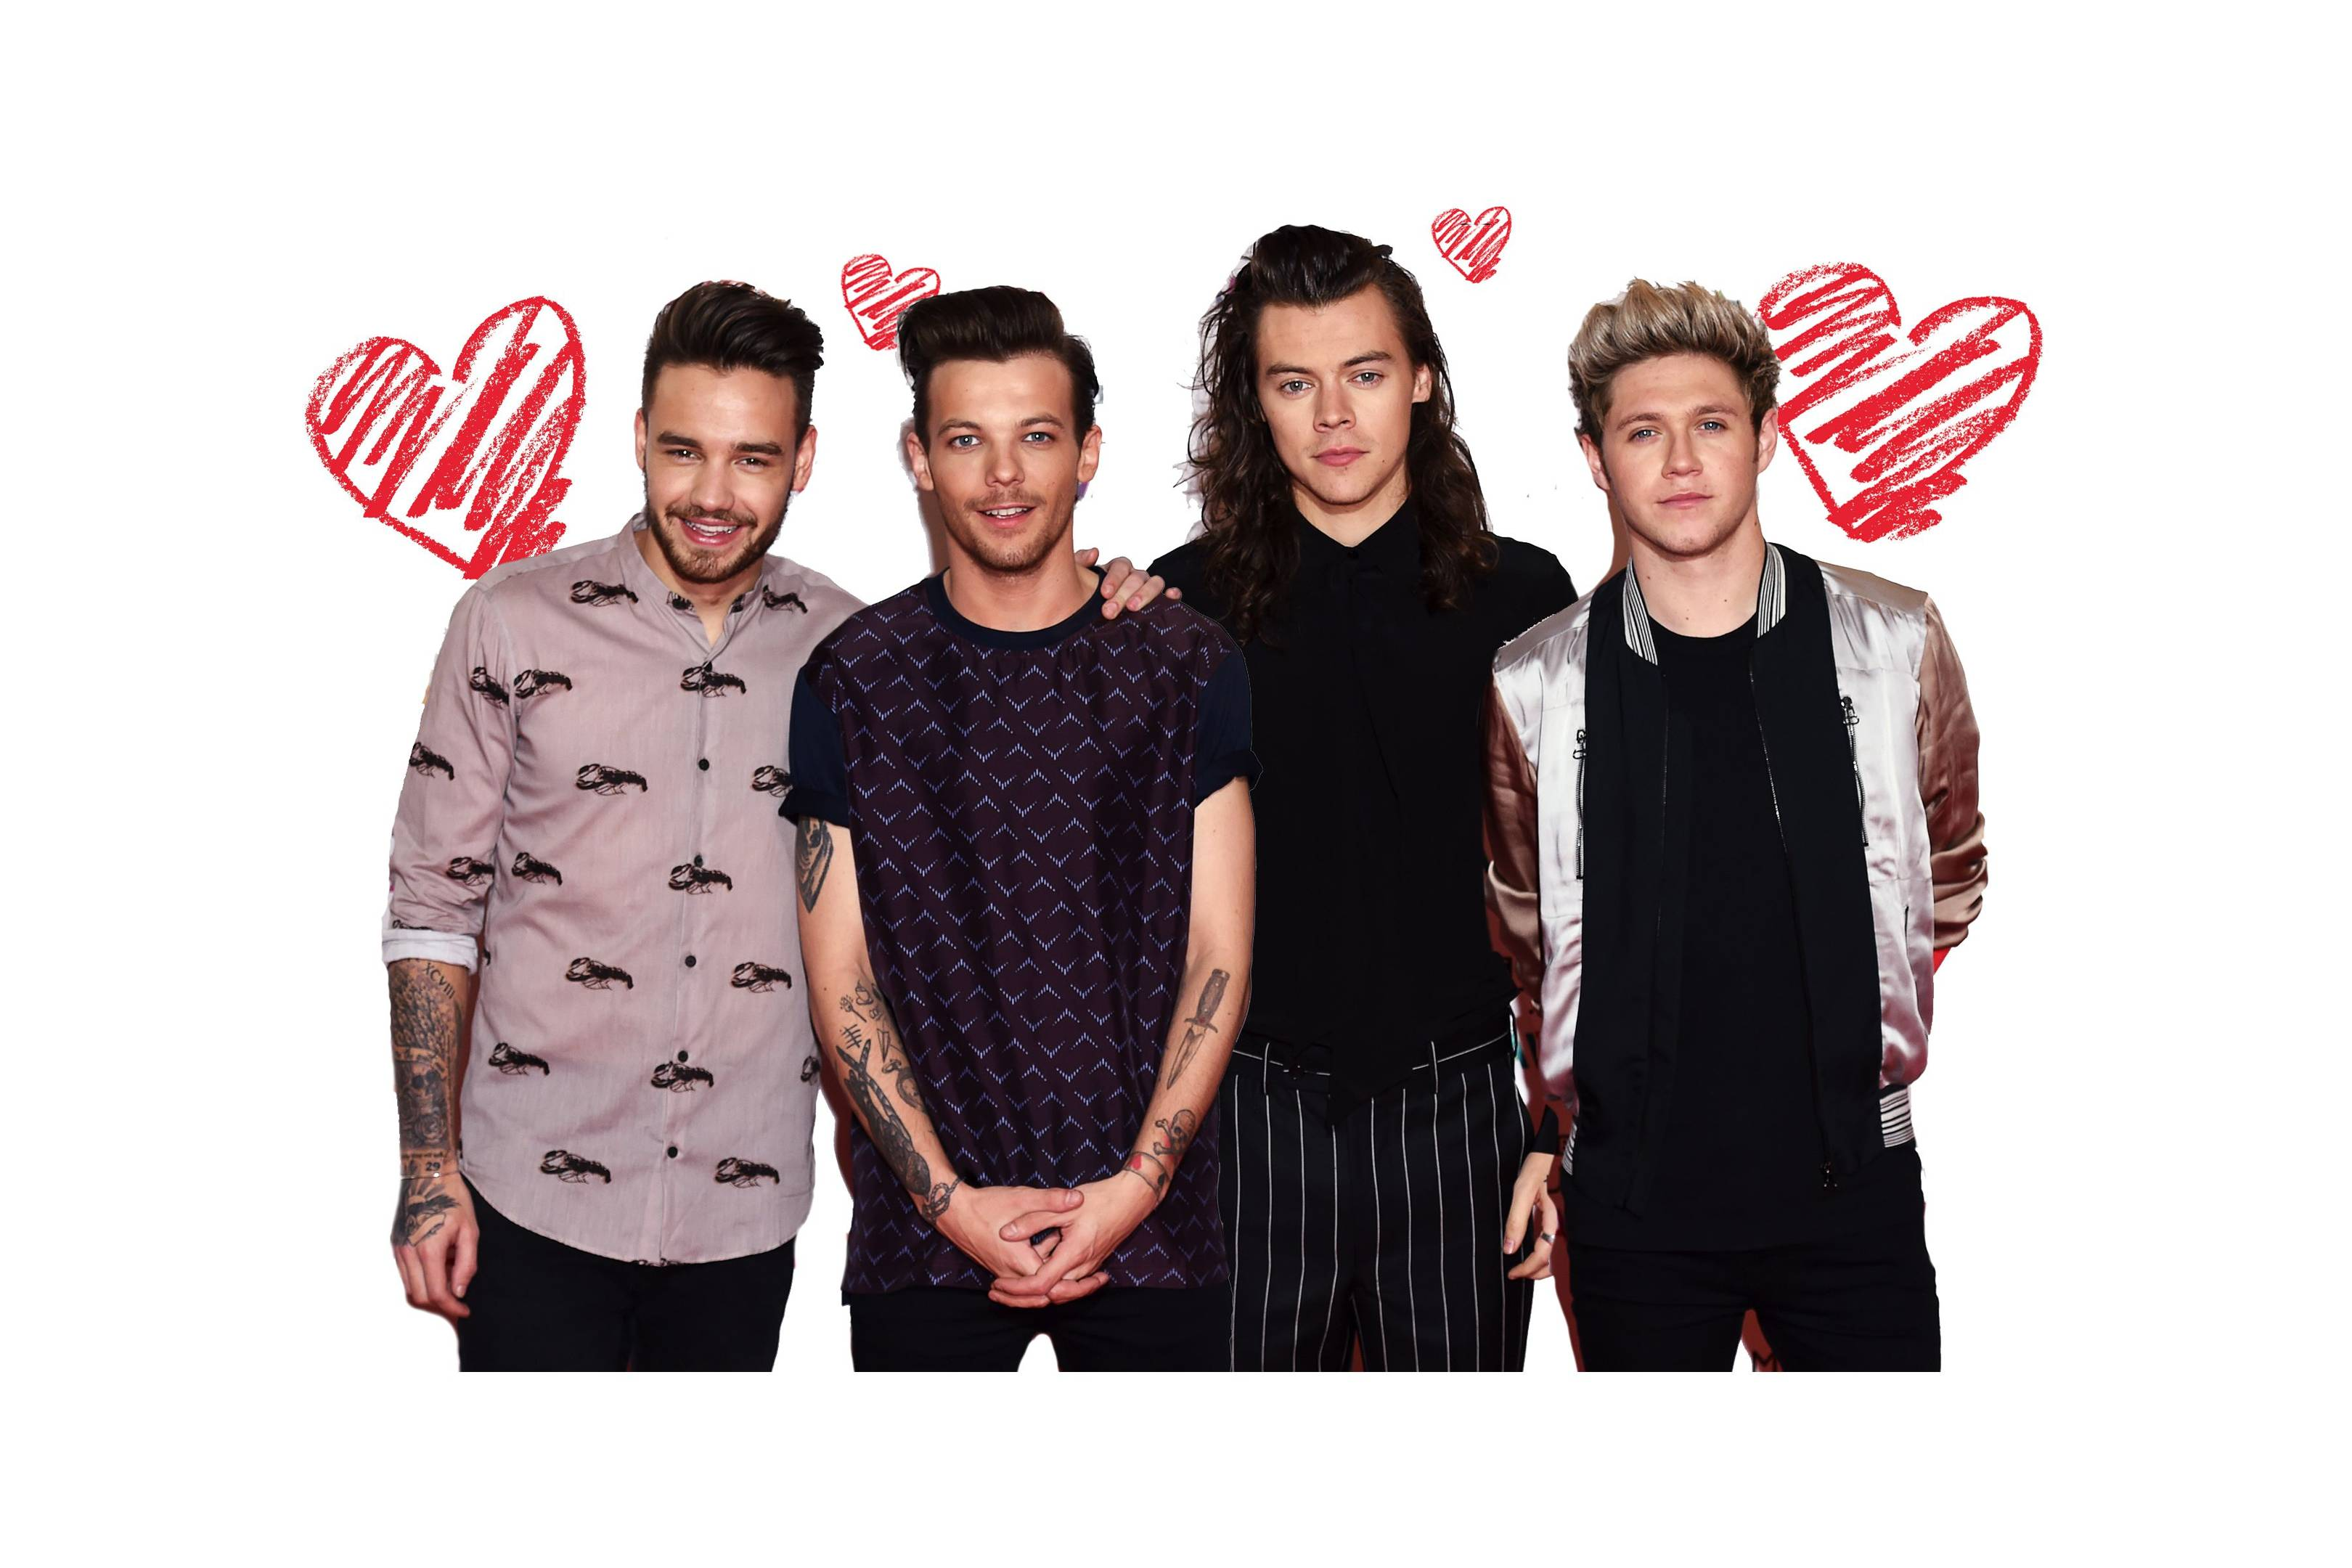 Who are the one direction band members dating